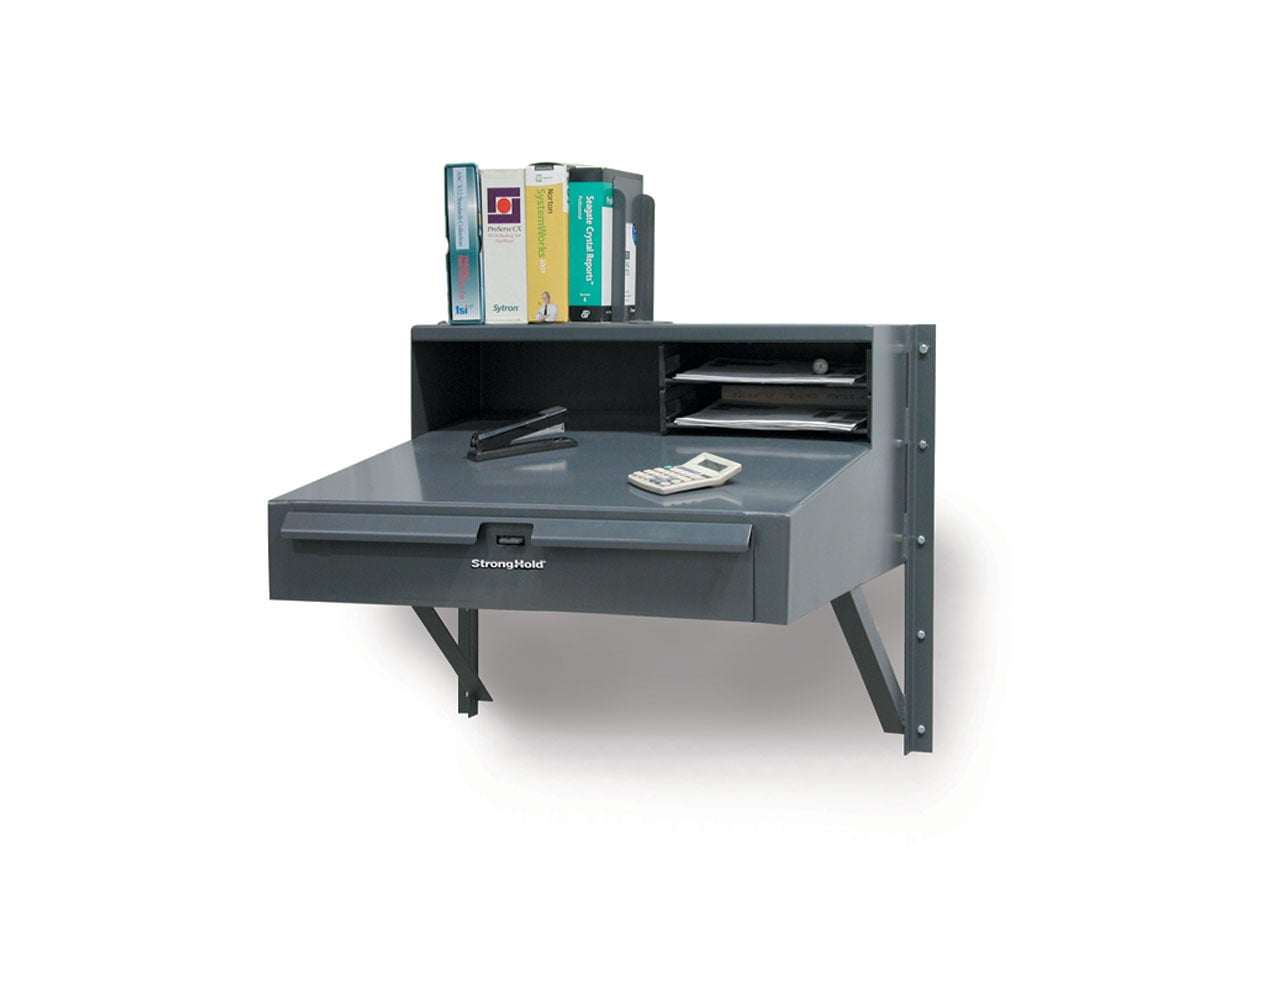 Extra Heavy Duty 12 GA Wall-Mounted Shop Desk with 1 Drawer, Riser Shelf – 30 In. W x 28 In. D x 27 In. H